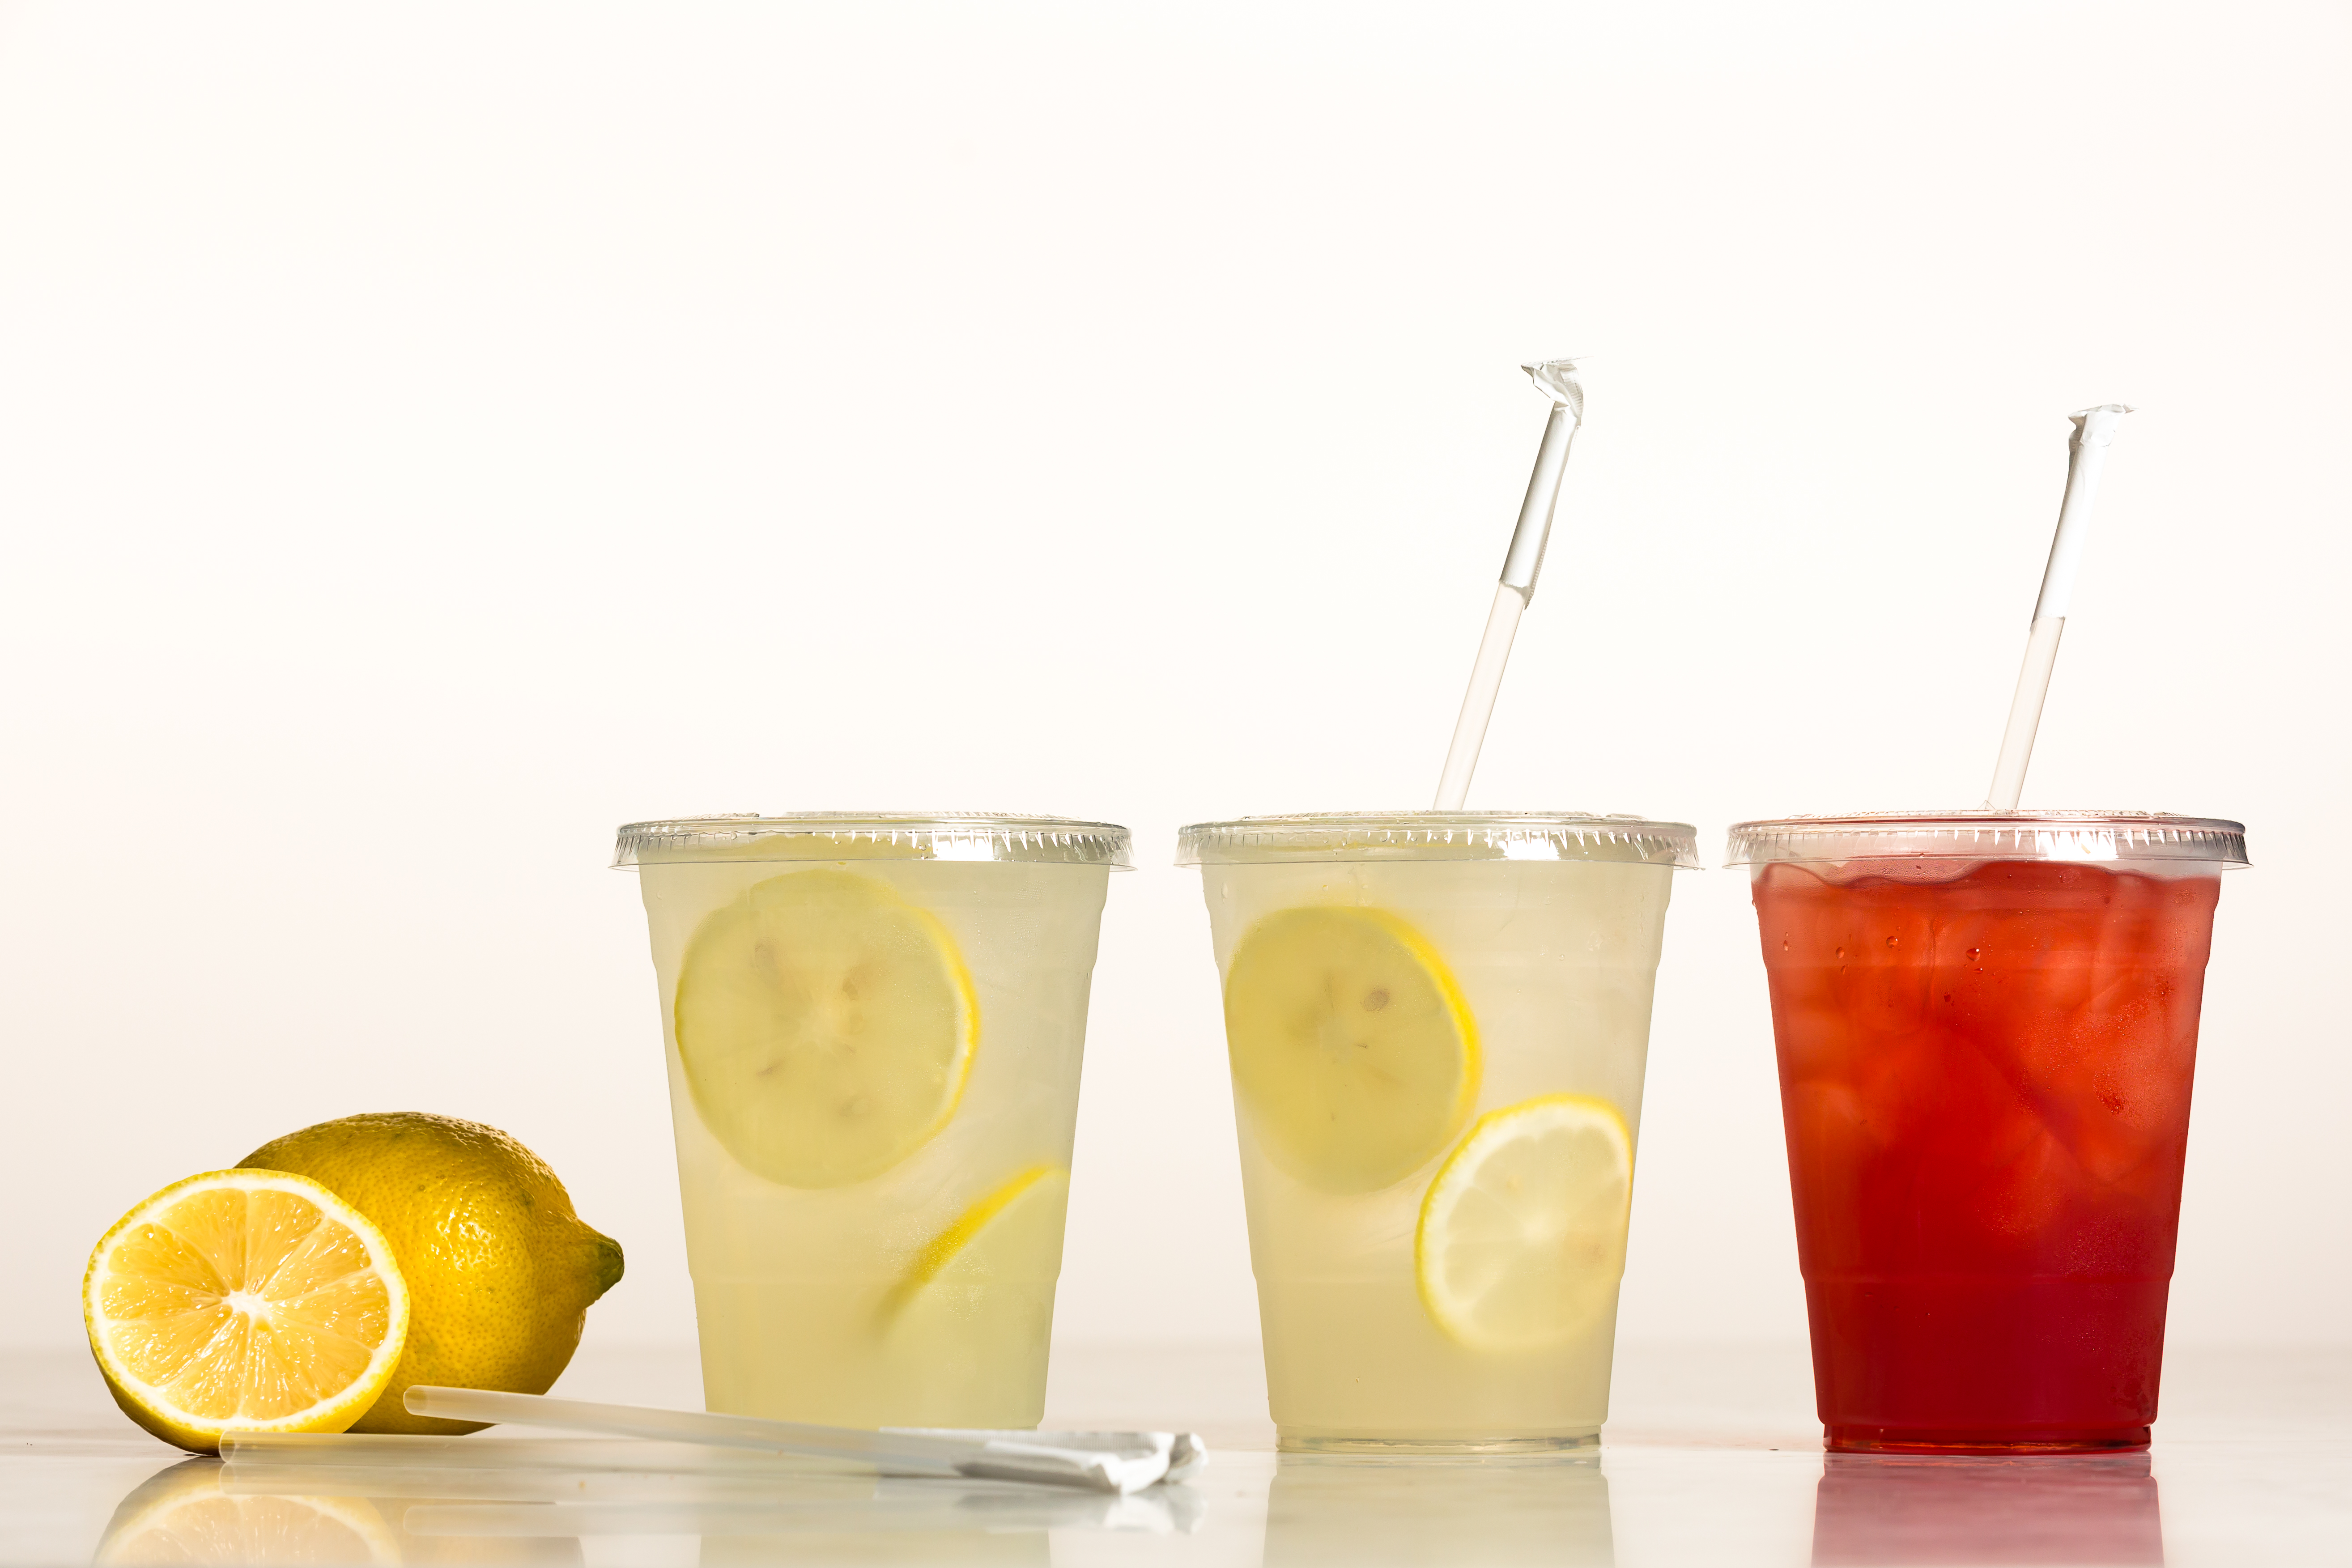 MANGIA'S ICED TEAS and THEIR HEALTH BENEFITS